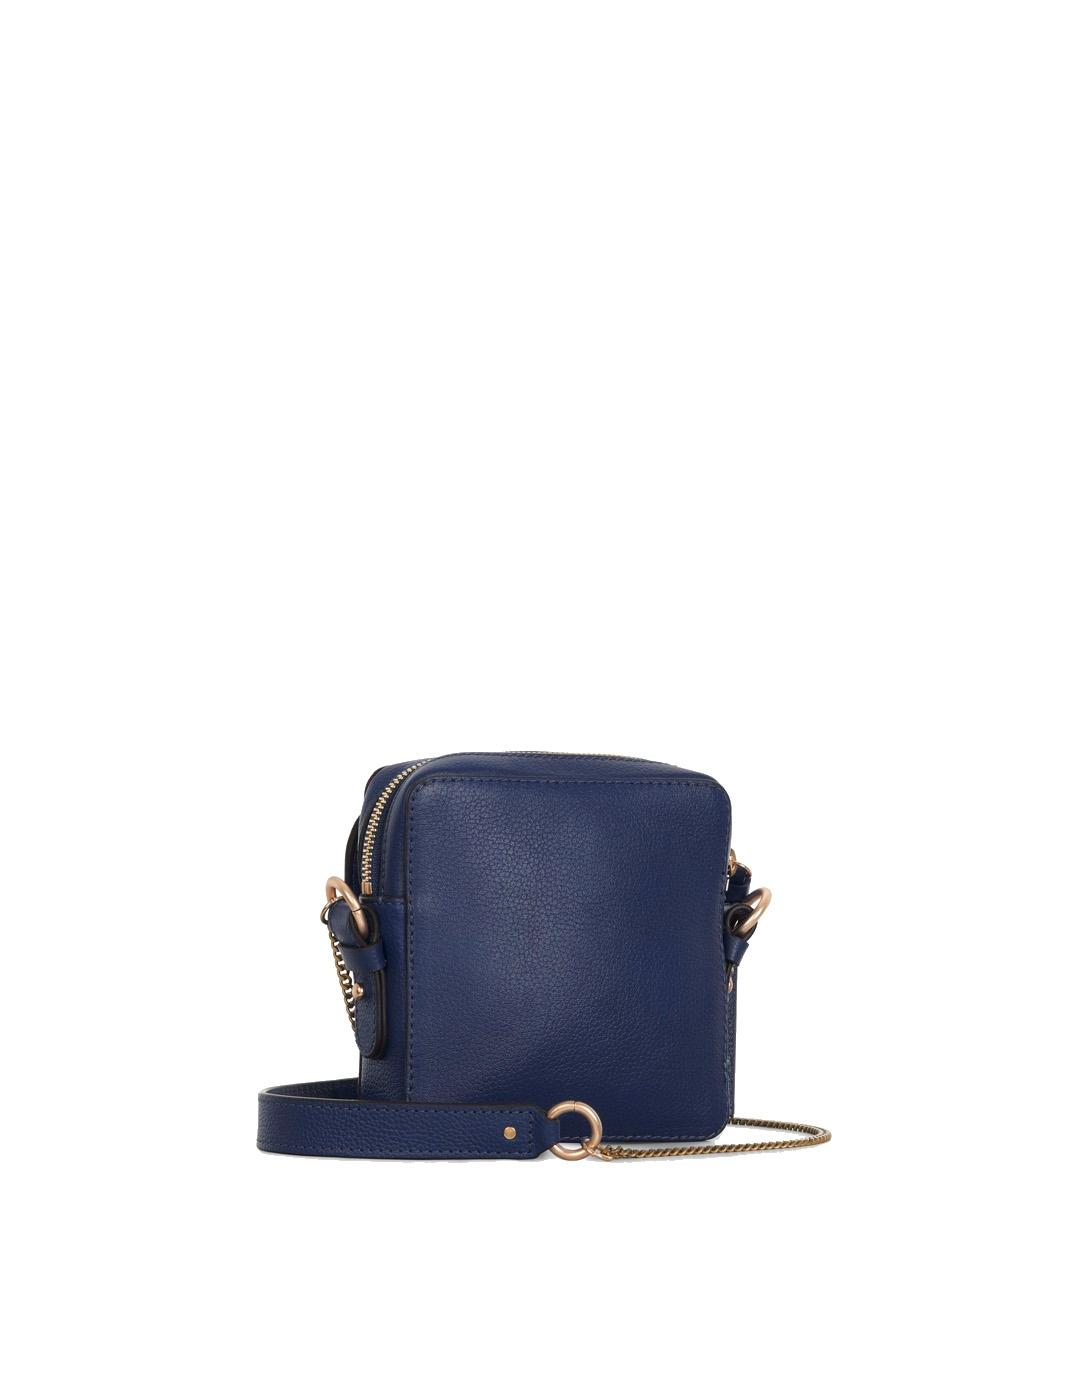 Bolso See by Chloé azul Joan SBC Shoulder Bag